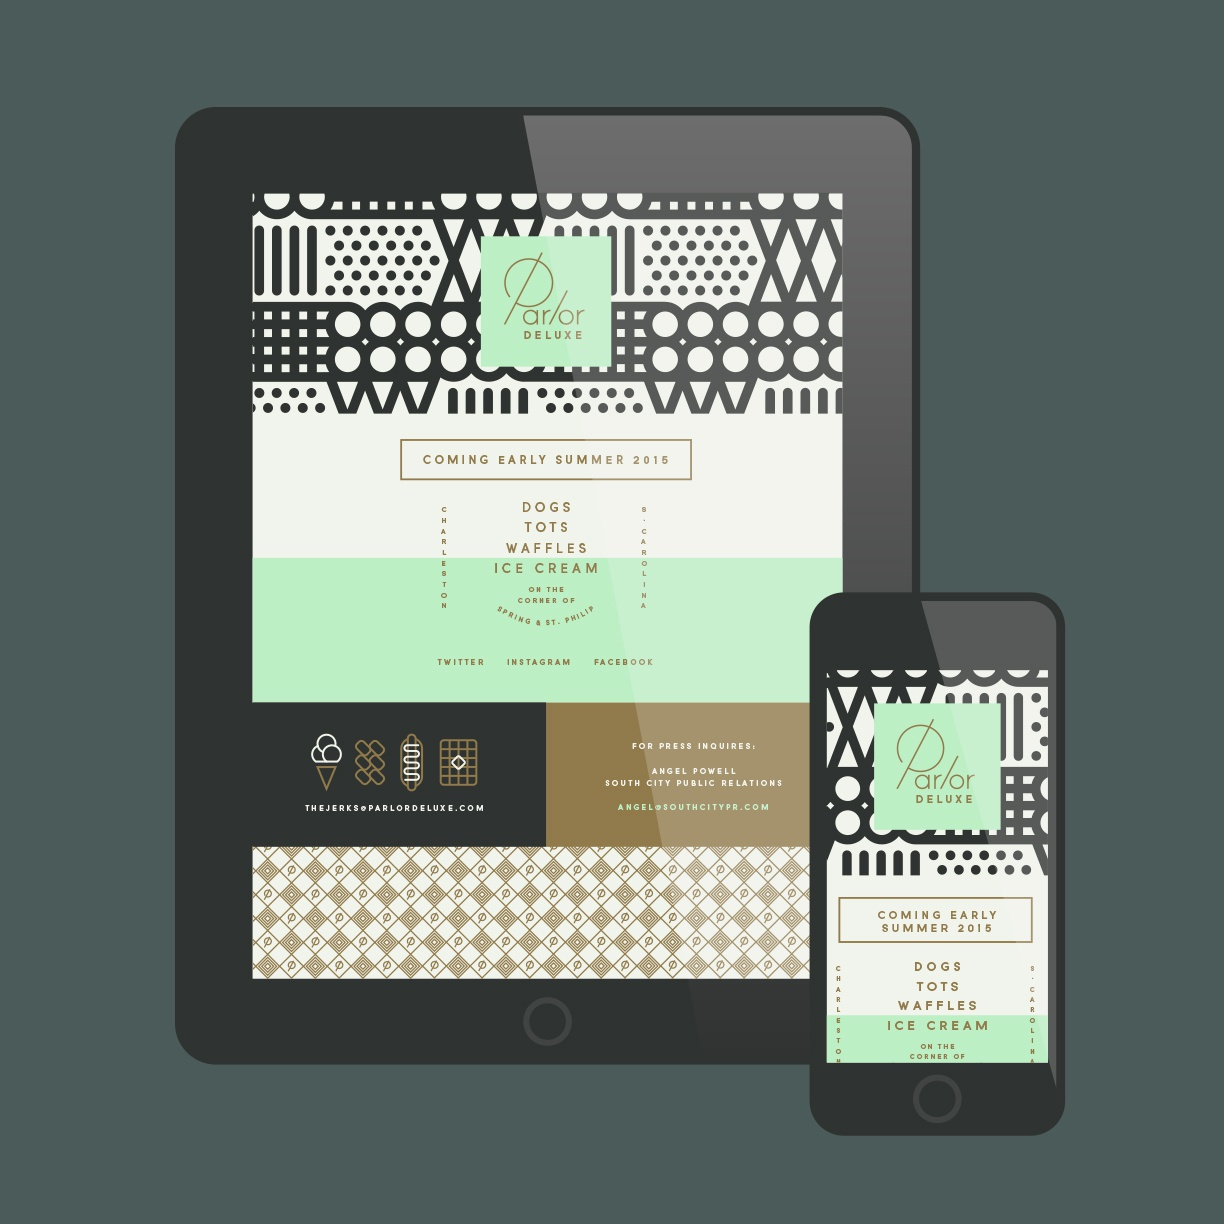 Parlor deluxe dribbble web shot detail j fletcher